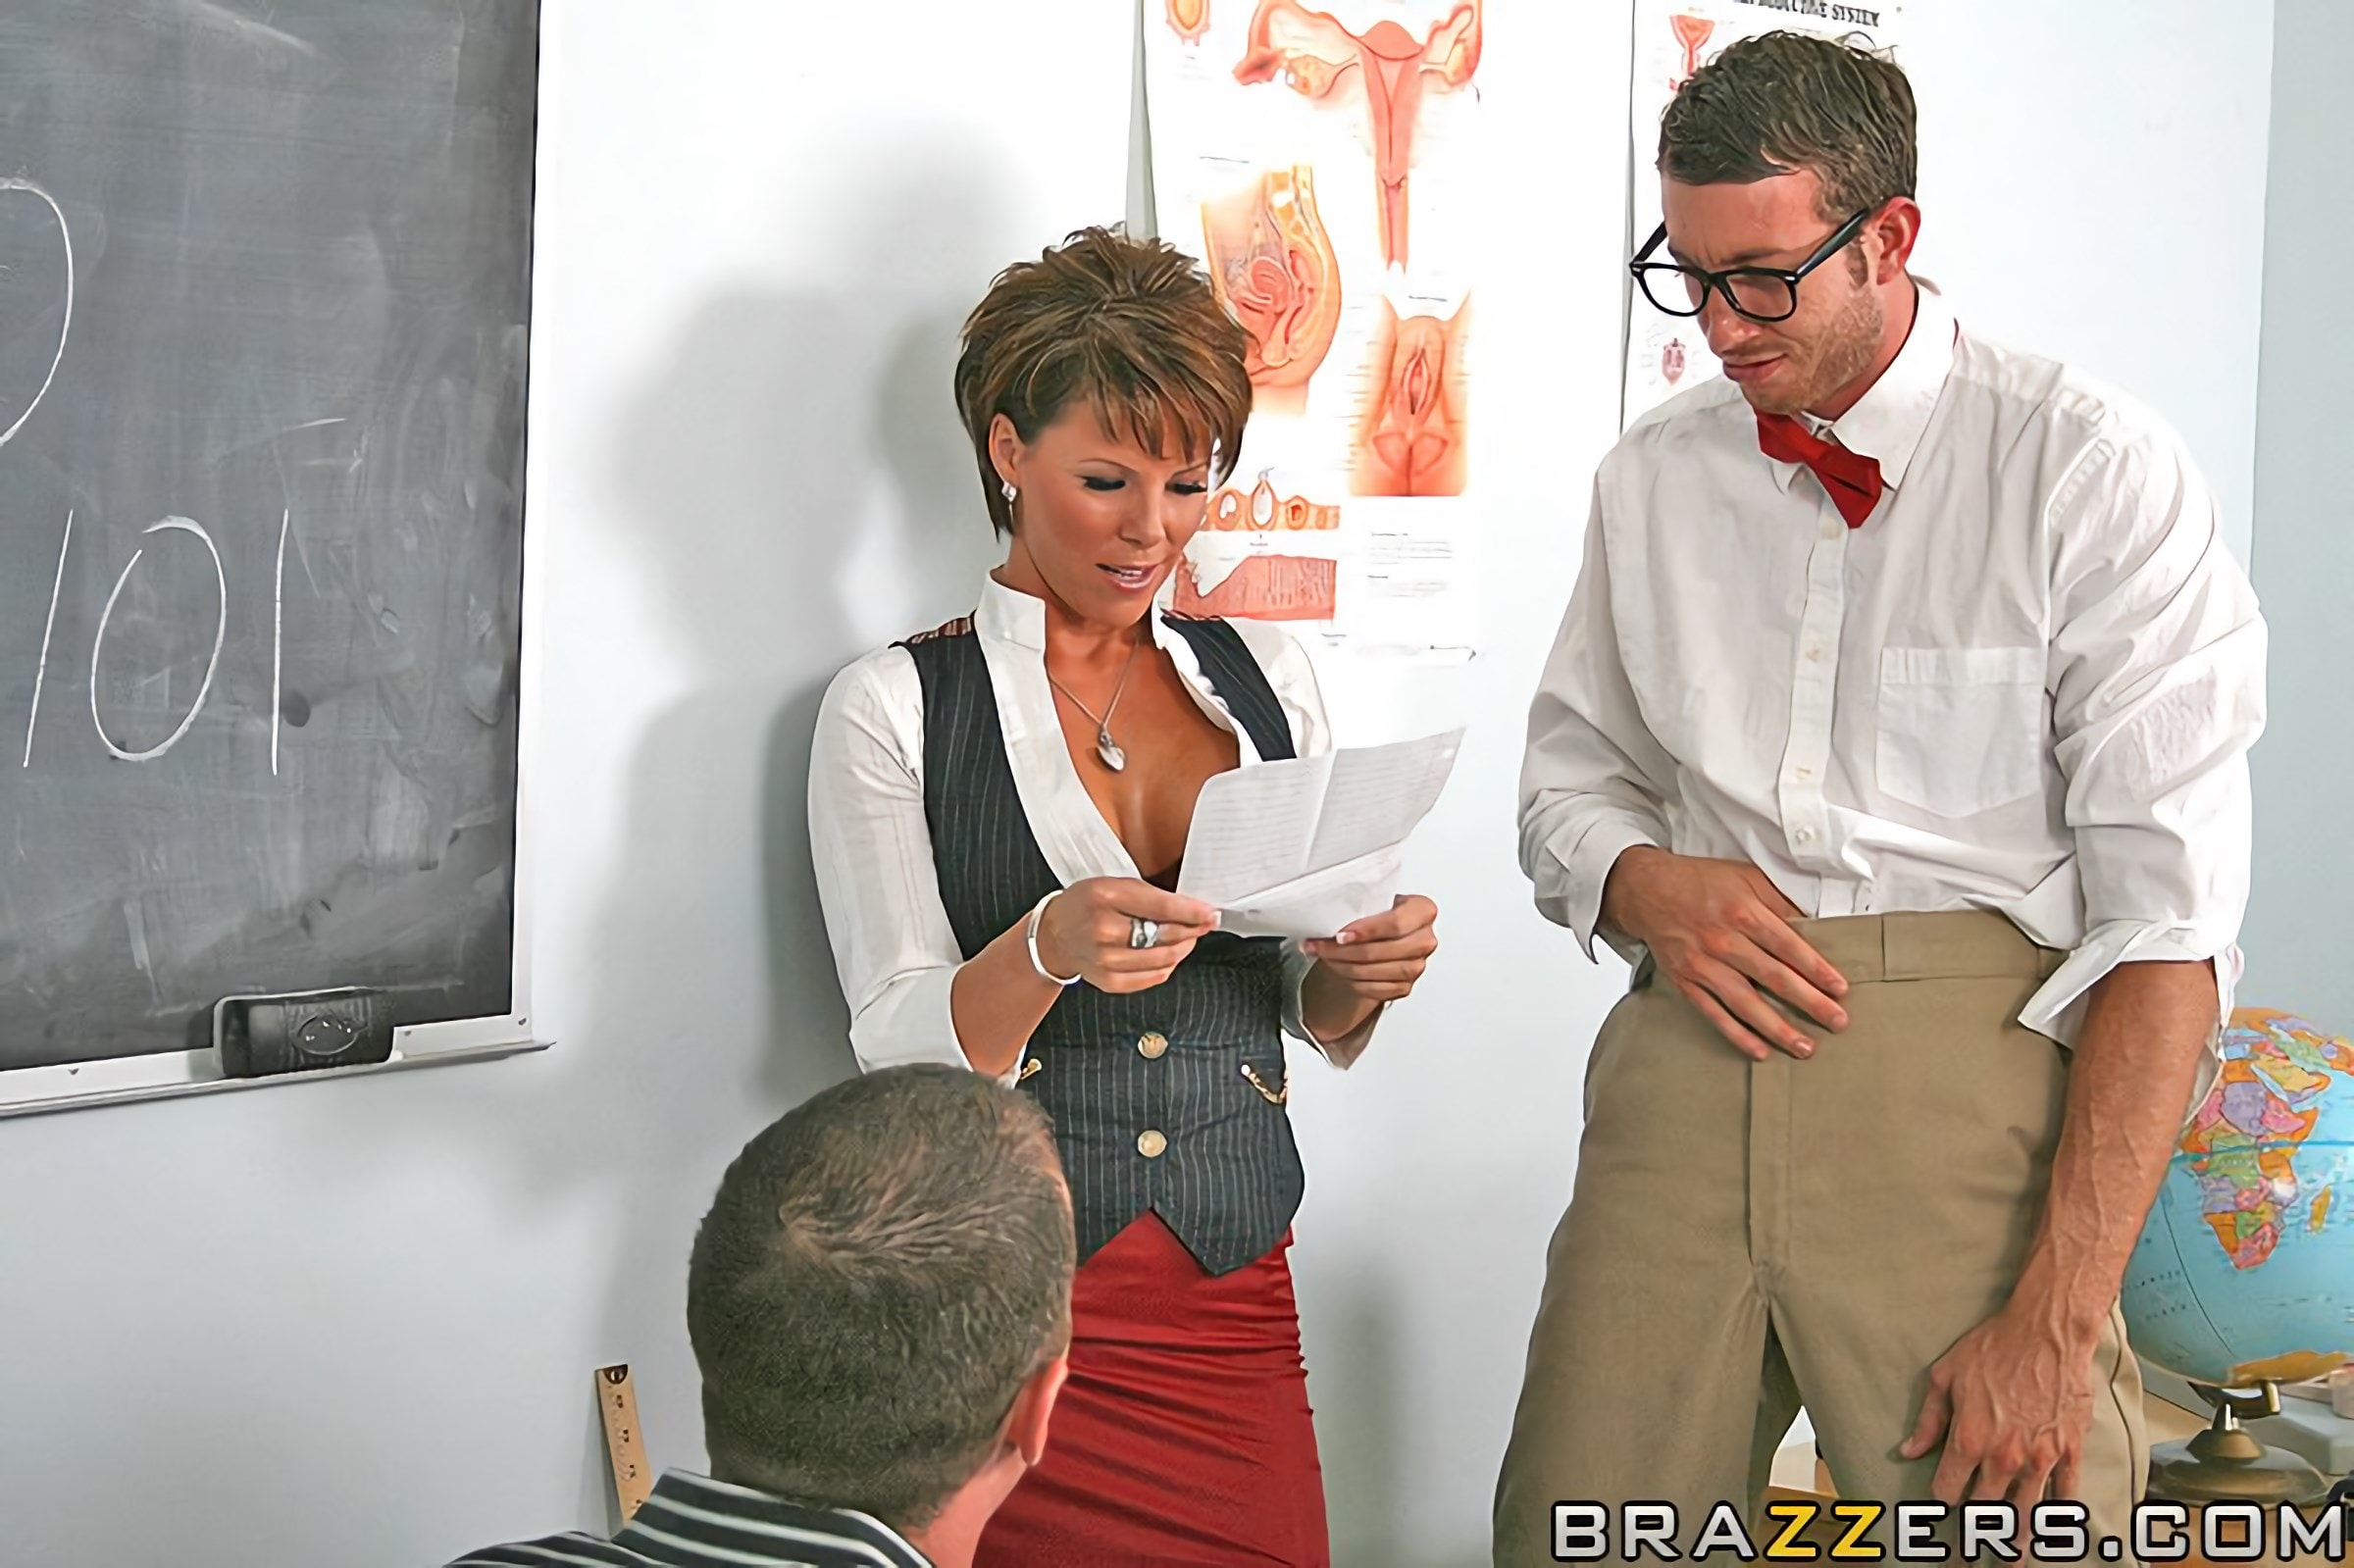 Kayla Synz - Sex_Education_in_Depth (photo 6)| Brazzers